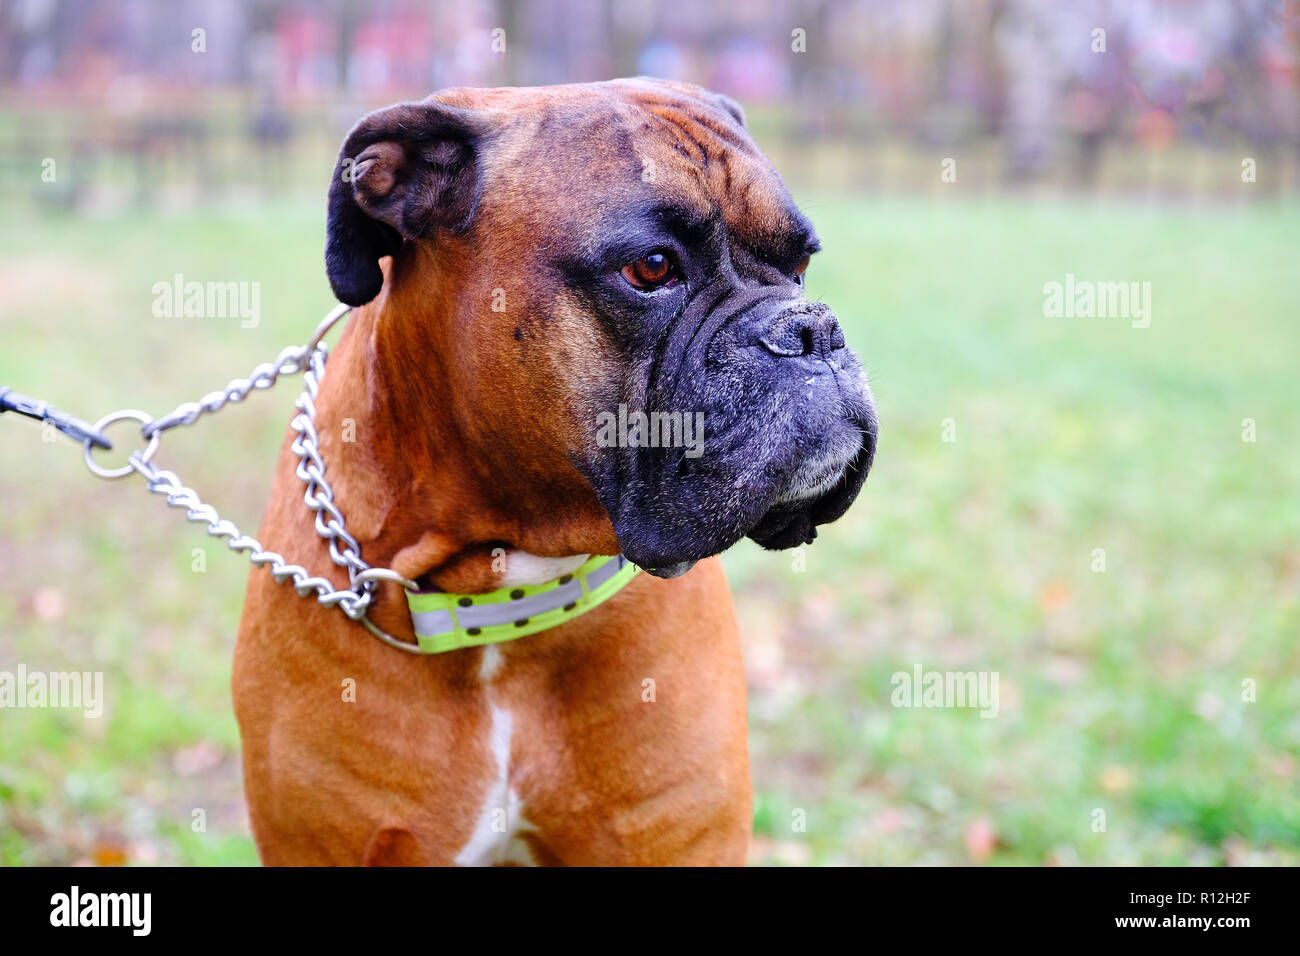 Muzzle dogs breed bulldog. Close-up of the dog looking into the distance - Stock Image